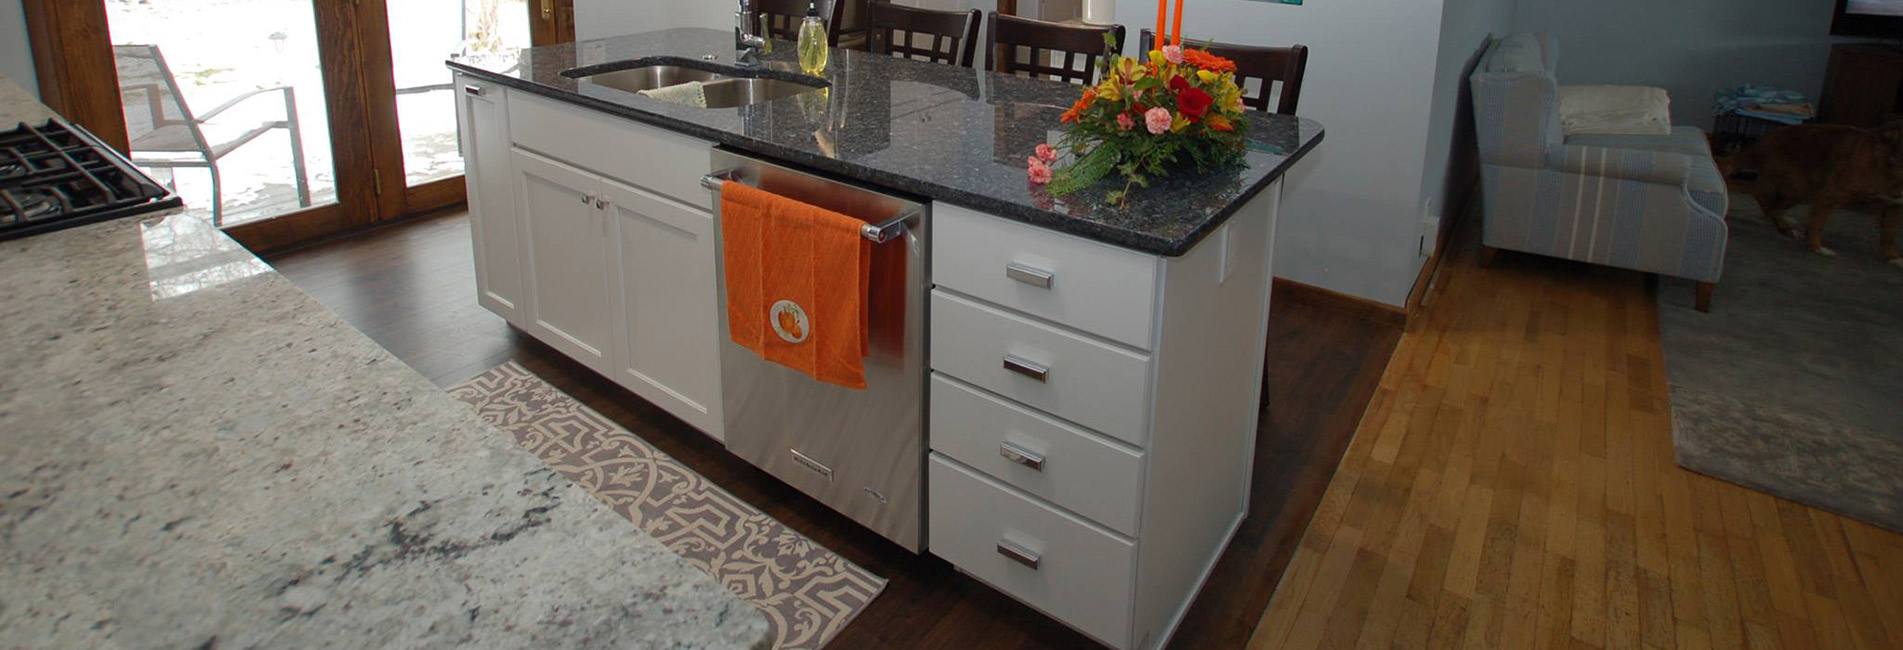 Give Your Kitchen A Facelift With Our Custom Countertops!